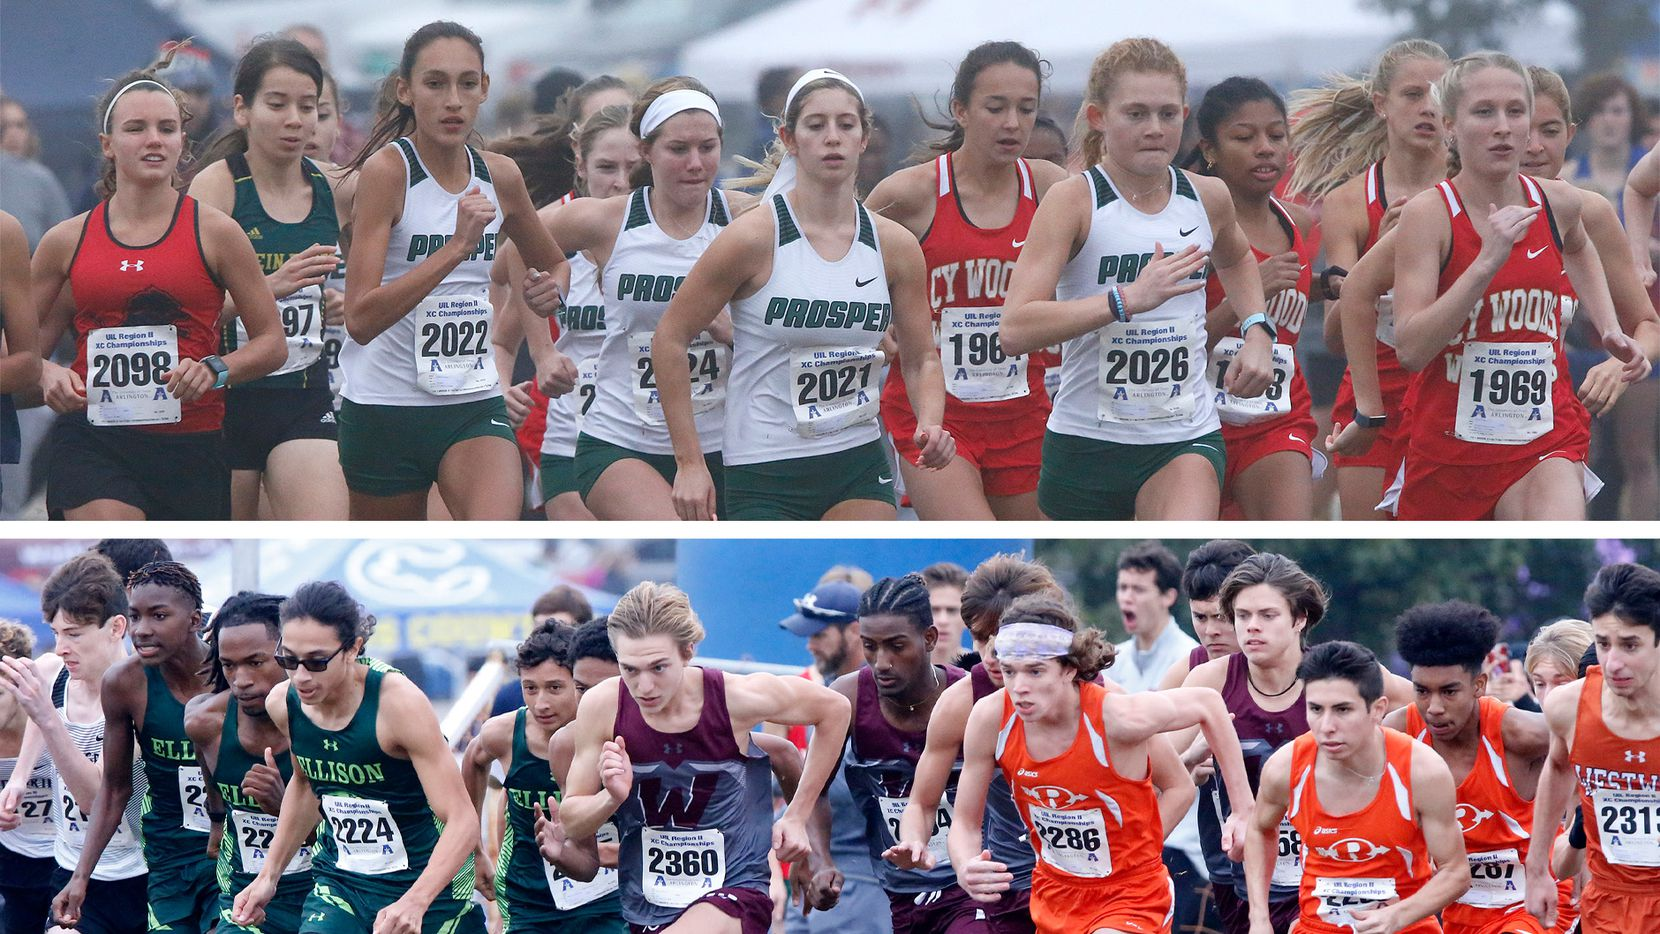 The 2019 girls 6A division at the Region II Cross County meet (top) and the 2019 boys 6A division at the Region II Cross County meet (bottom).